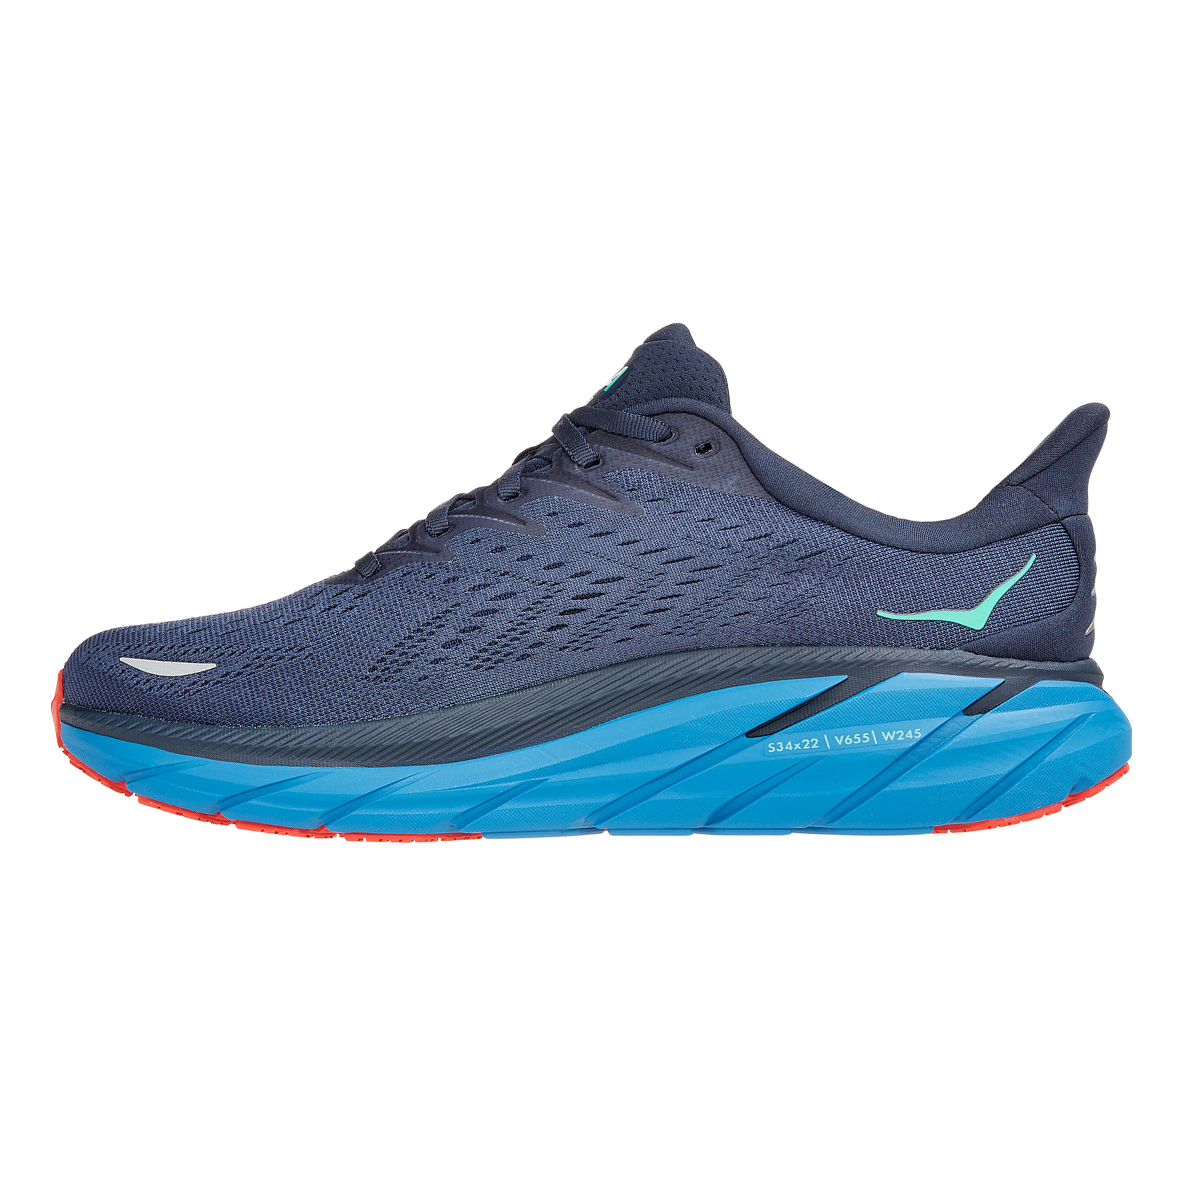 Men's Hoka One One Clifton 8 Running Shoe - Color: Outer Space/Vallarta Blue - Size: 7 - Width: Regular, Outer Space/Vallarta Blue, large, image 2